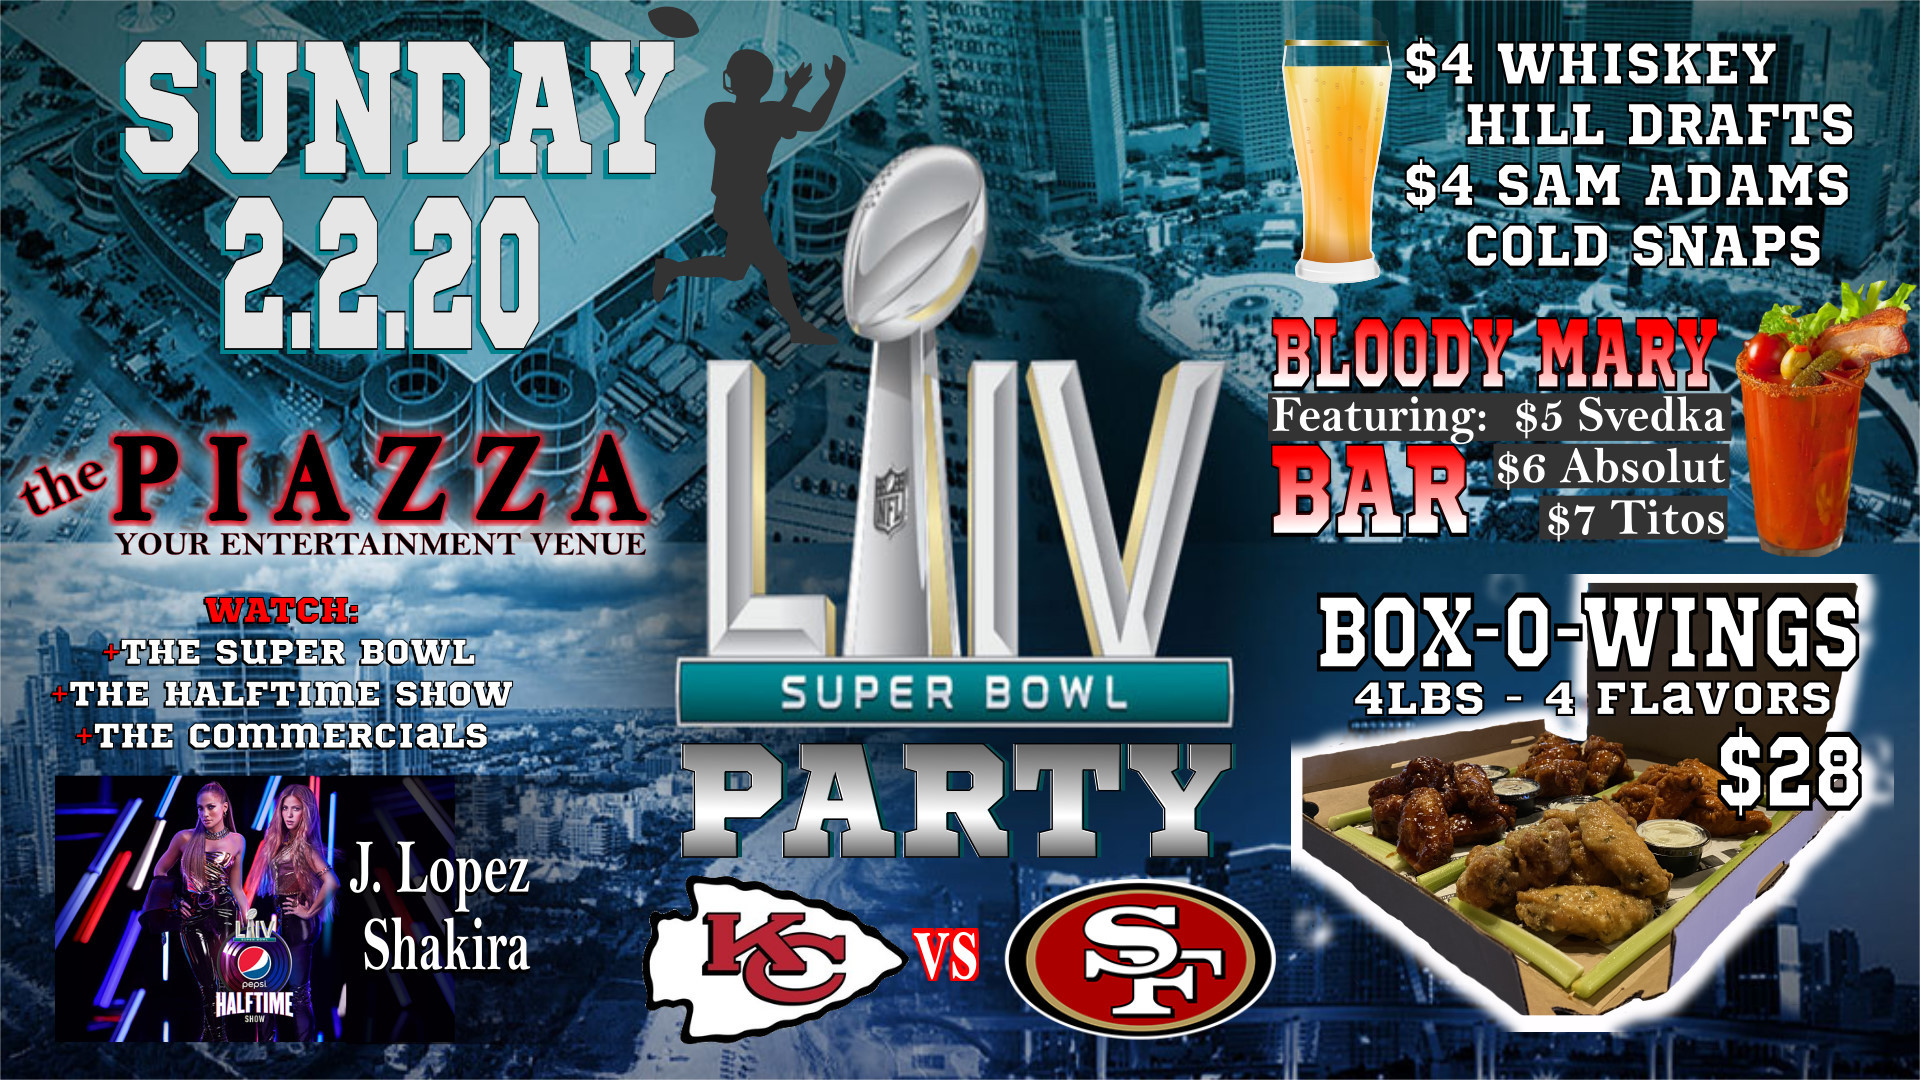 NFL Super Bowl LIV(54) Sunday @ the PIAZZA - Aurora